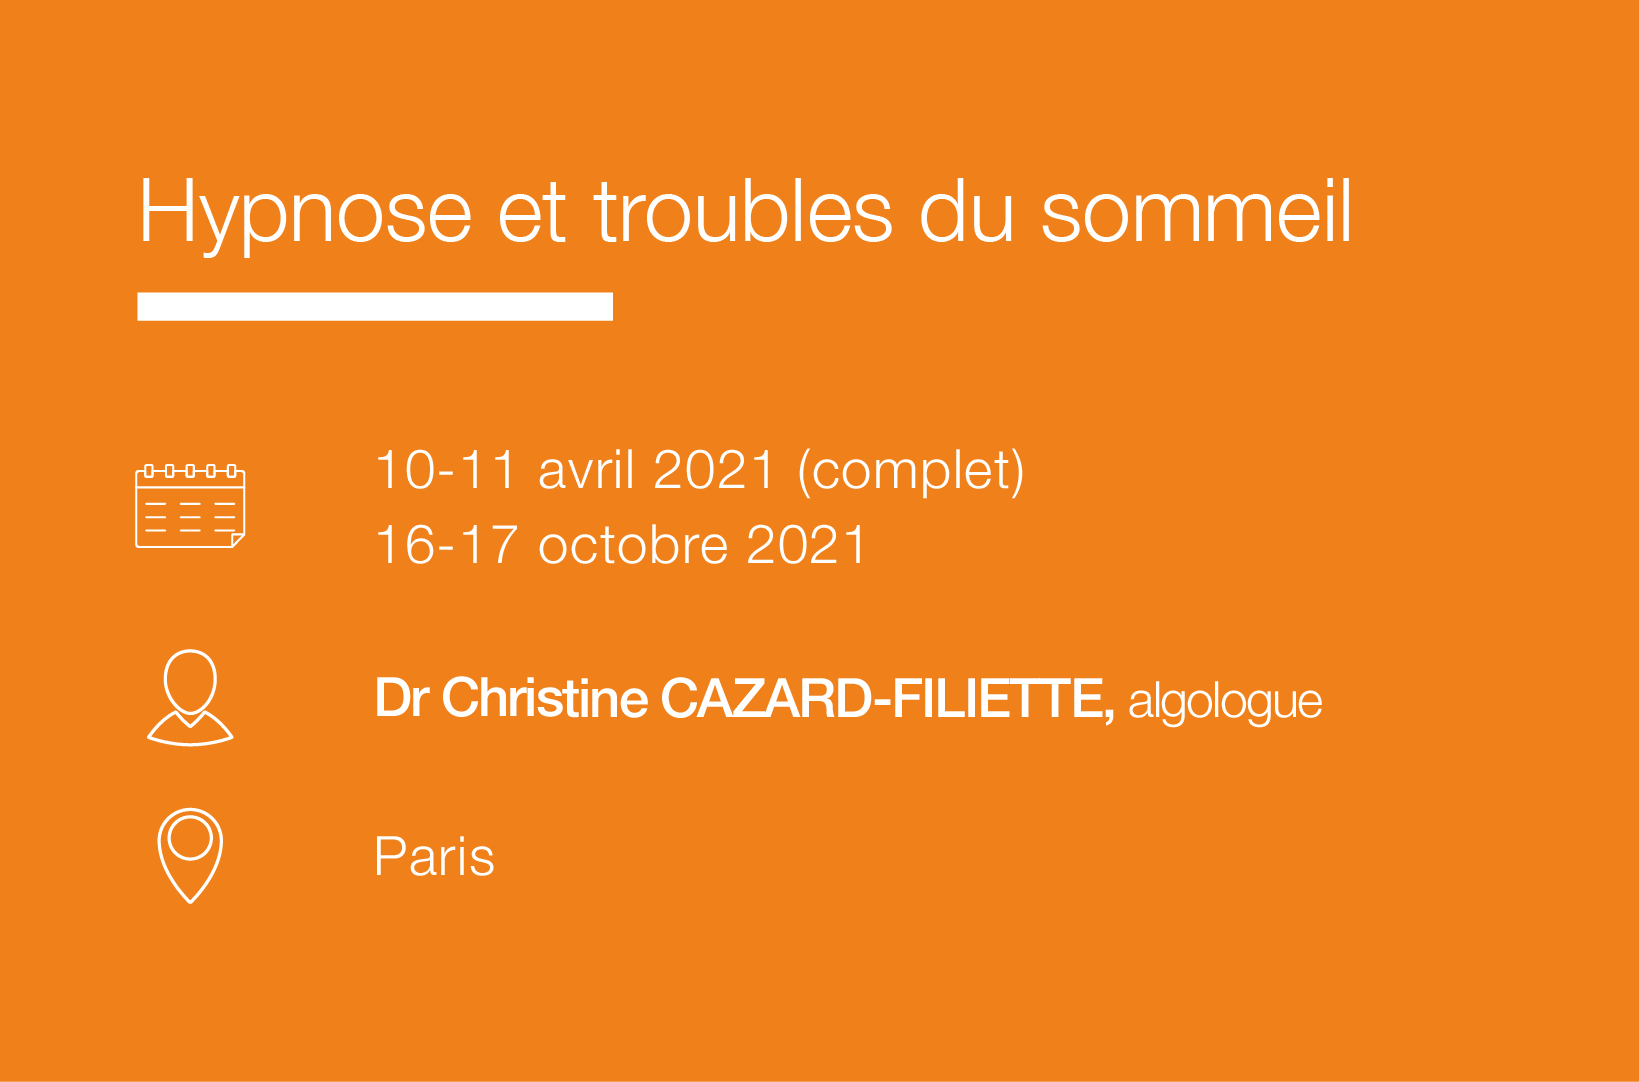 Seminaire formation Troubles-sommeil-hypnose-IFH